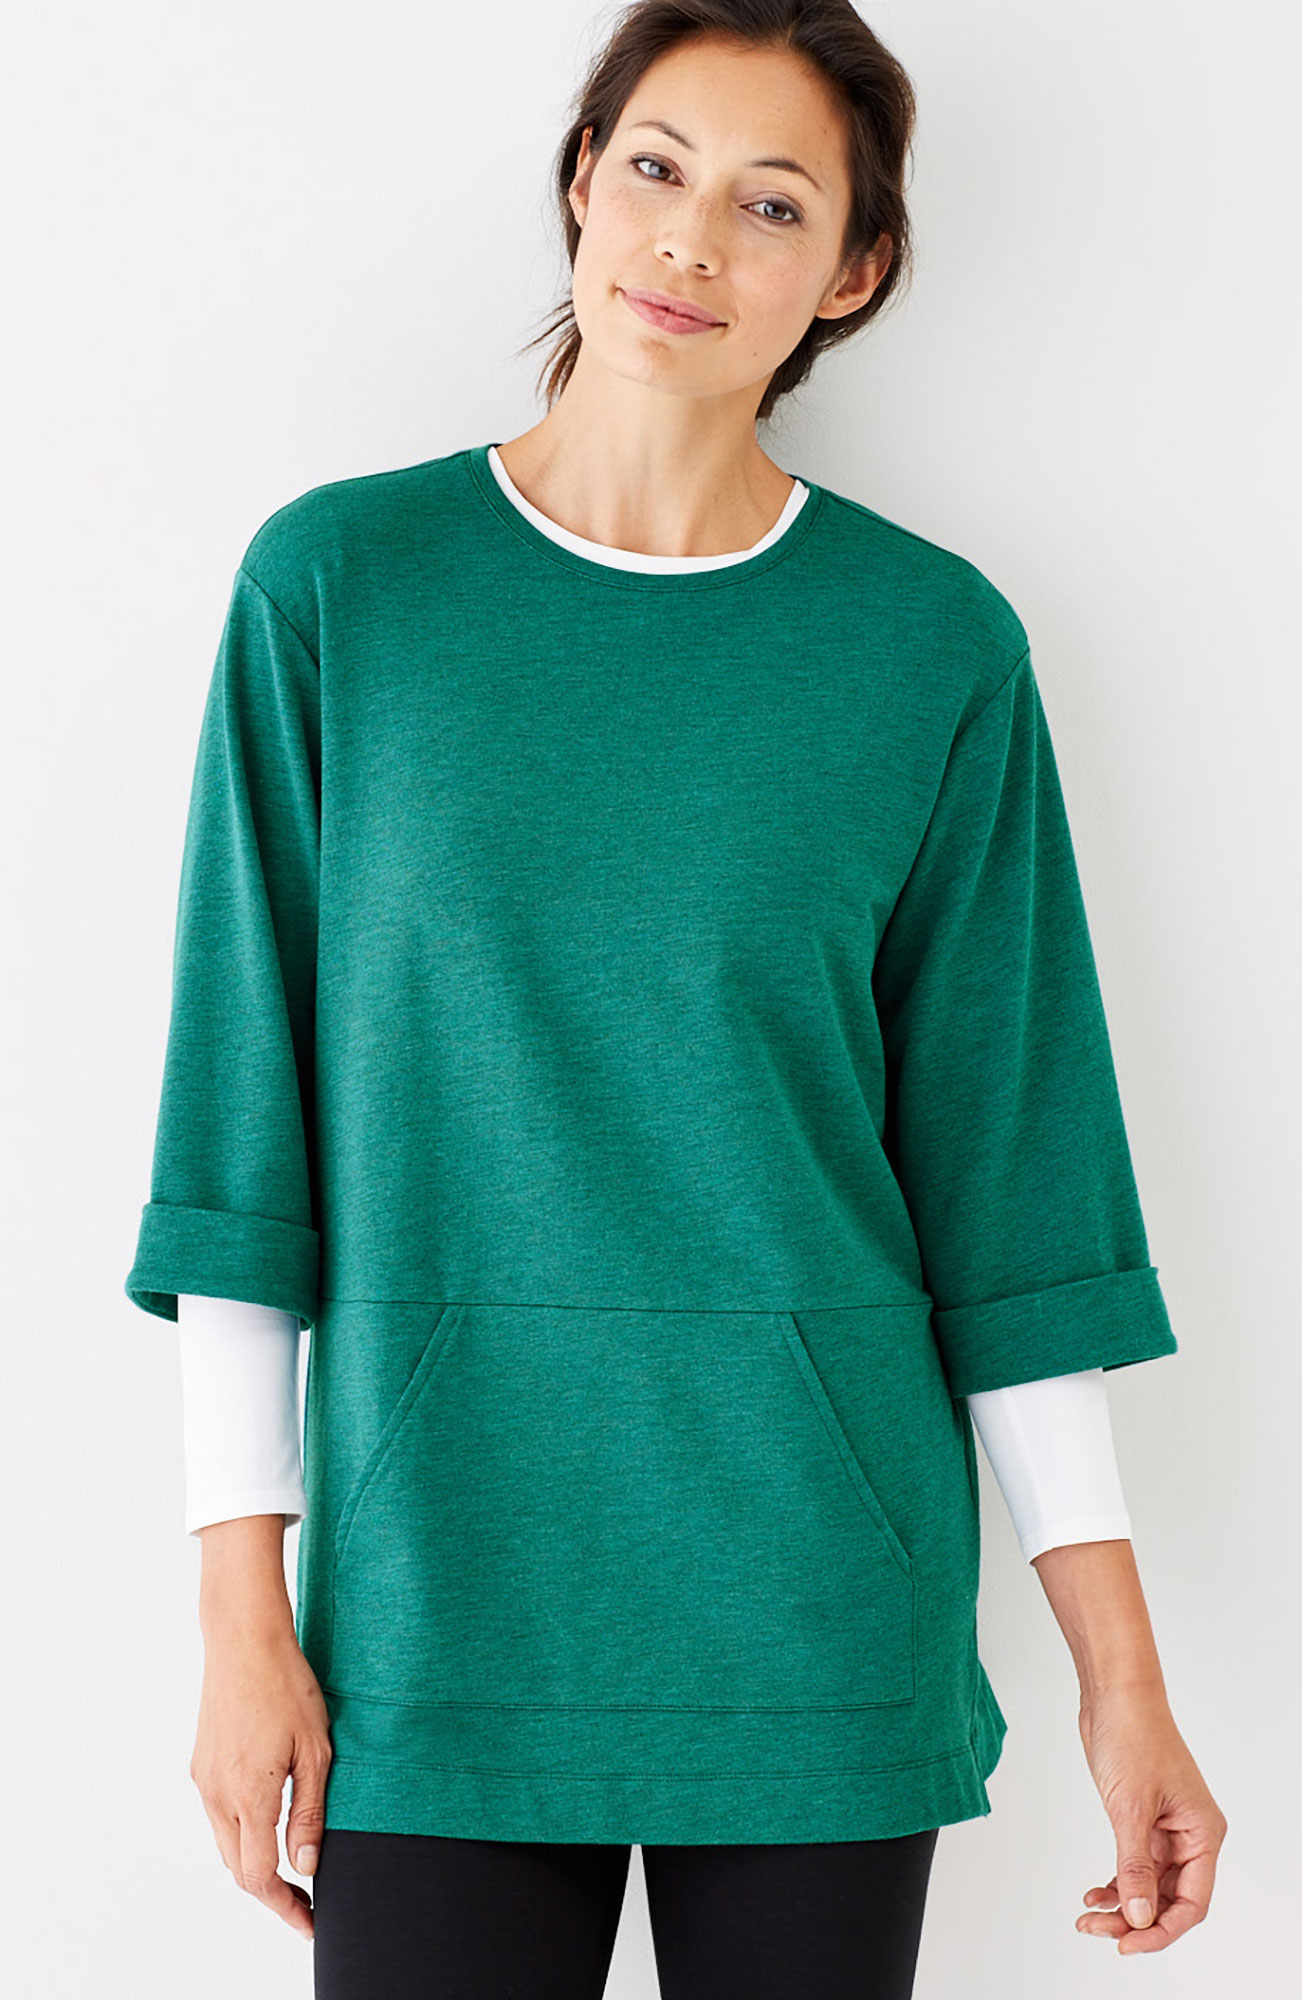 Pure Jill relaxed knit tunic